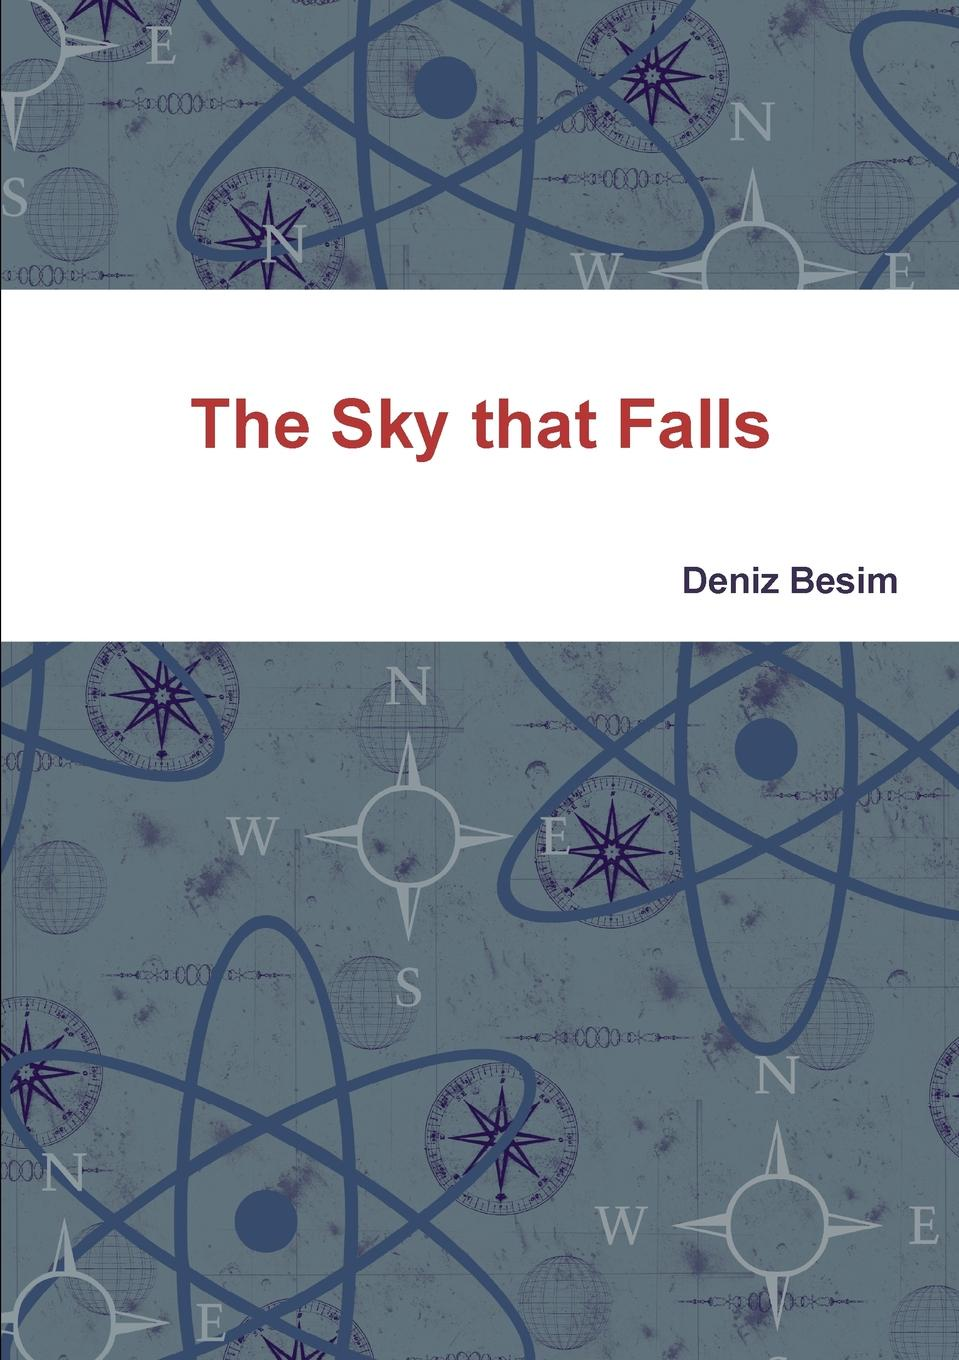 Deniz Besim The Sky that Falls hine alfred london leek macclesfield the potteries buxton the seasons the farmers calendar and other poems